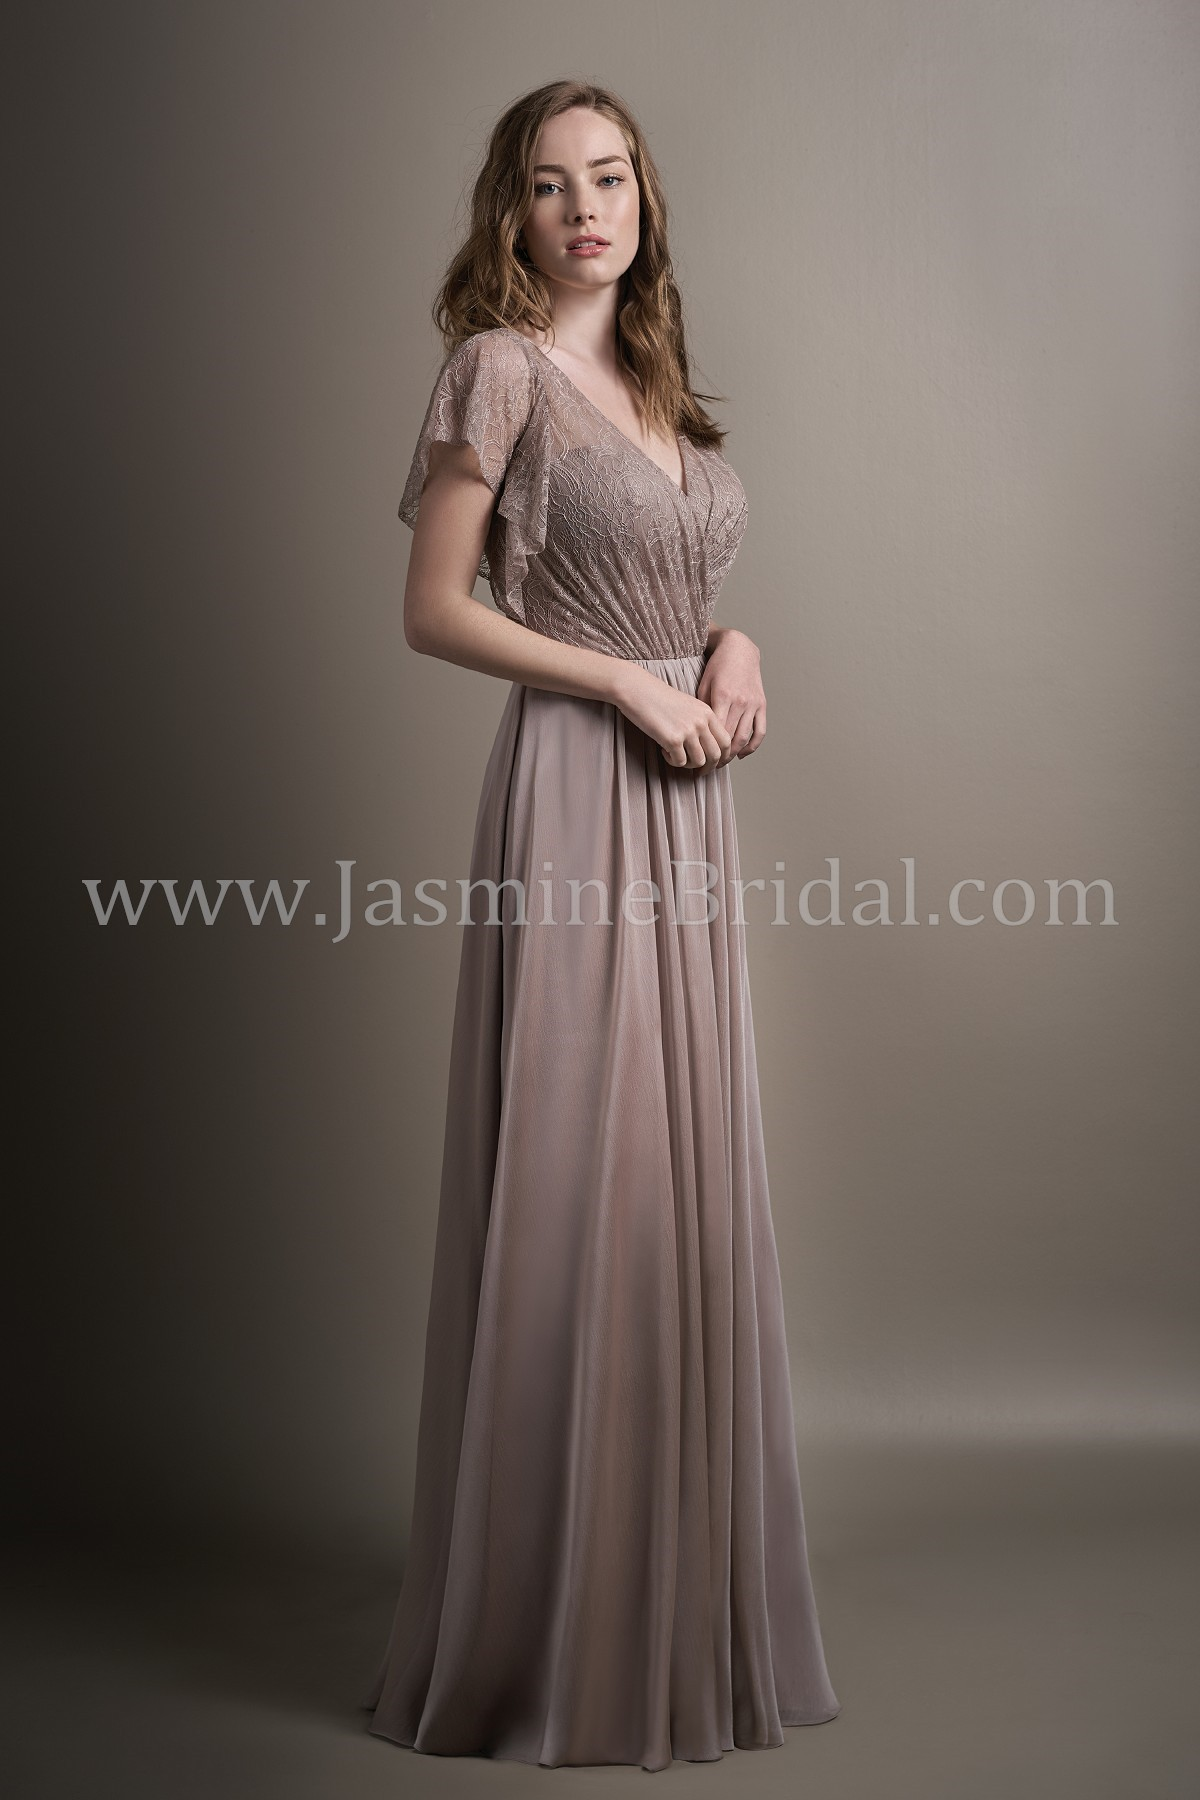 d4f262d4ad51 L194016 Long V-neck Lace   Belsoie Tiffany Chiffon Bridesmaid Dress with  Butterfly Sleeves